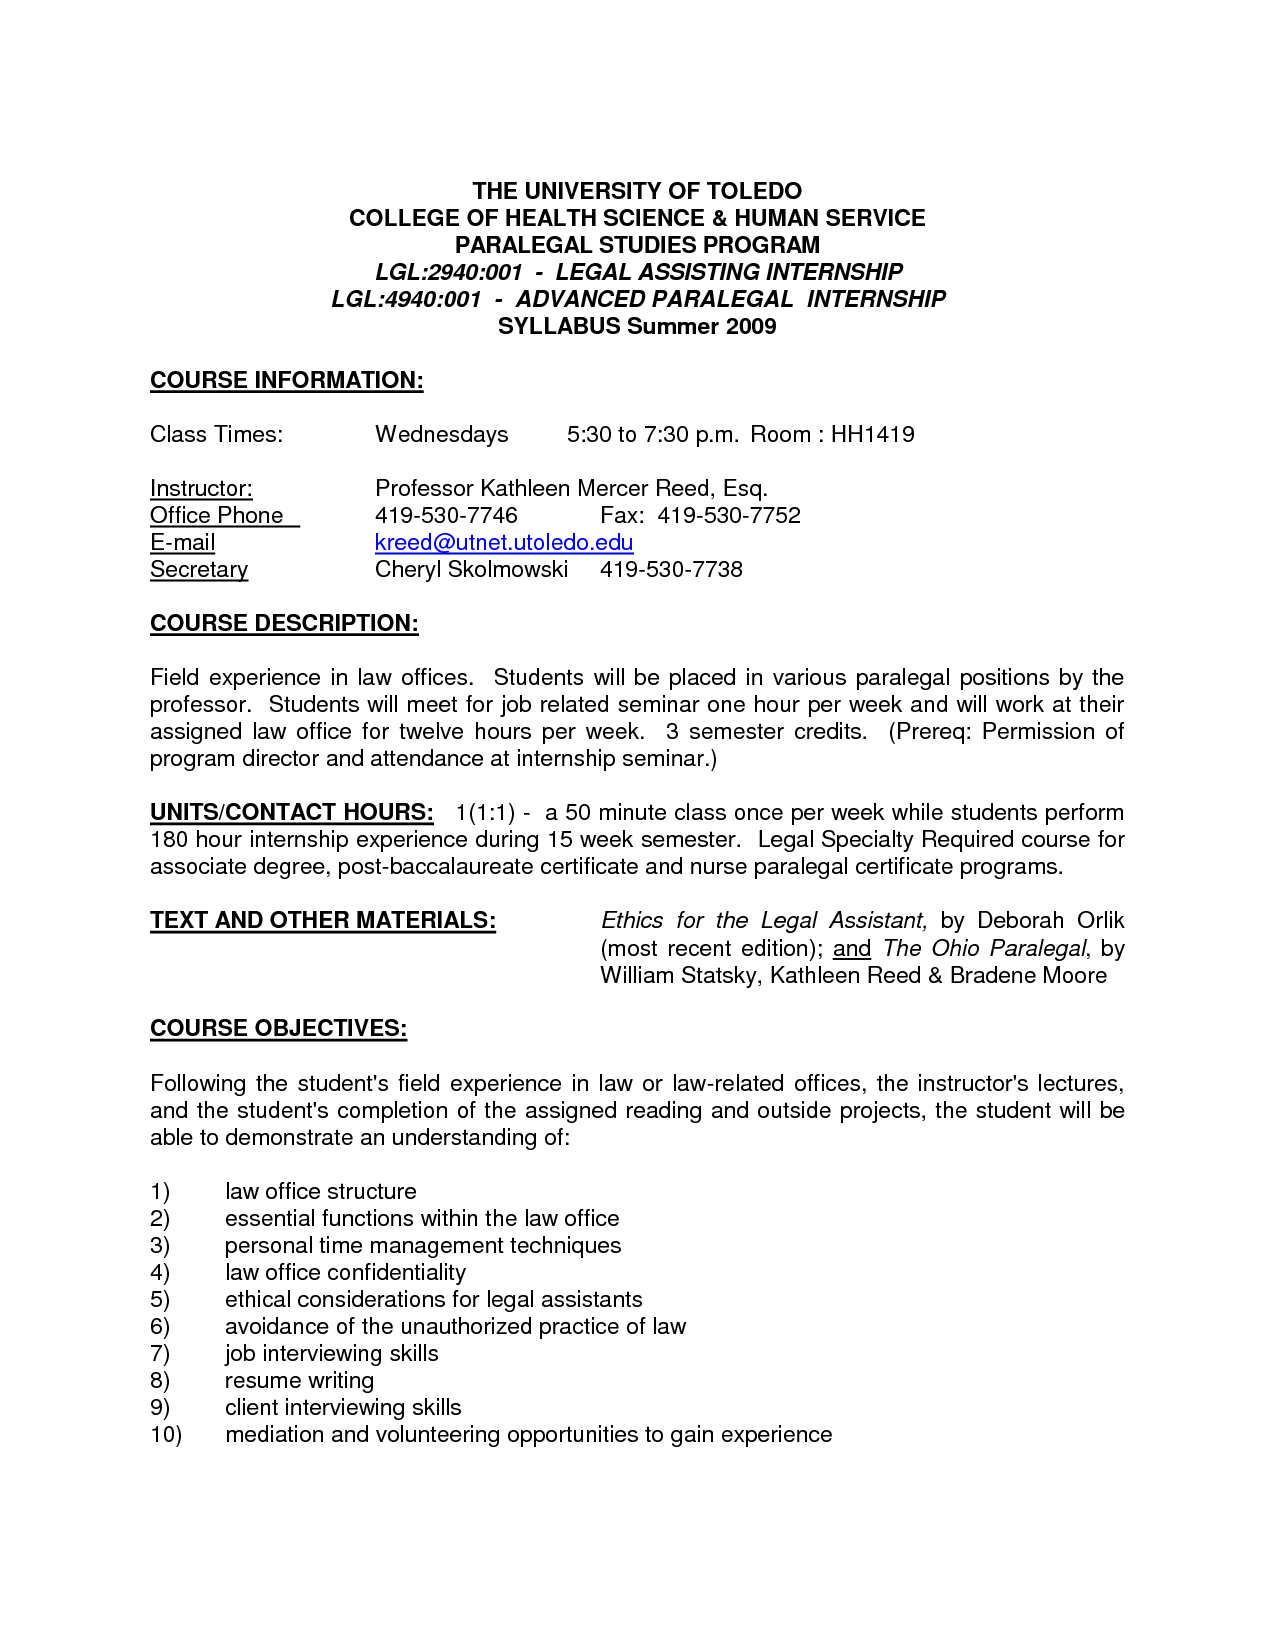 Cover Letter Sample Paralegal Medical Secretary Example Lettercv